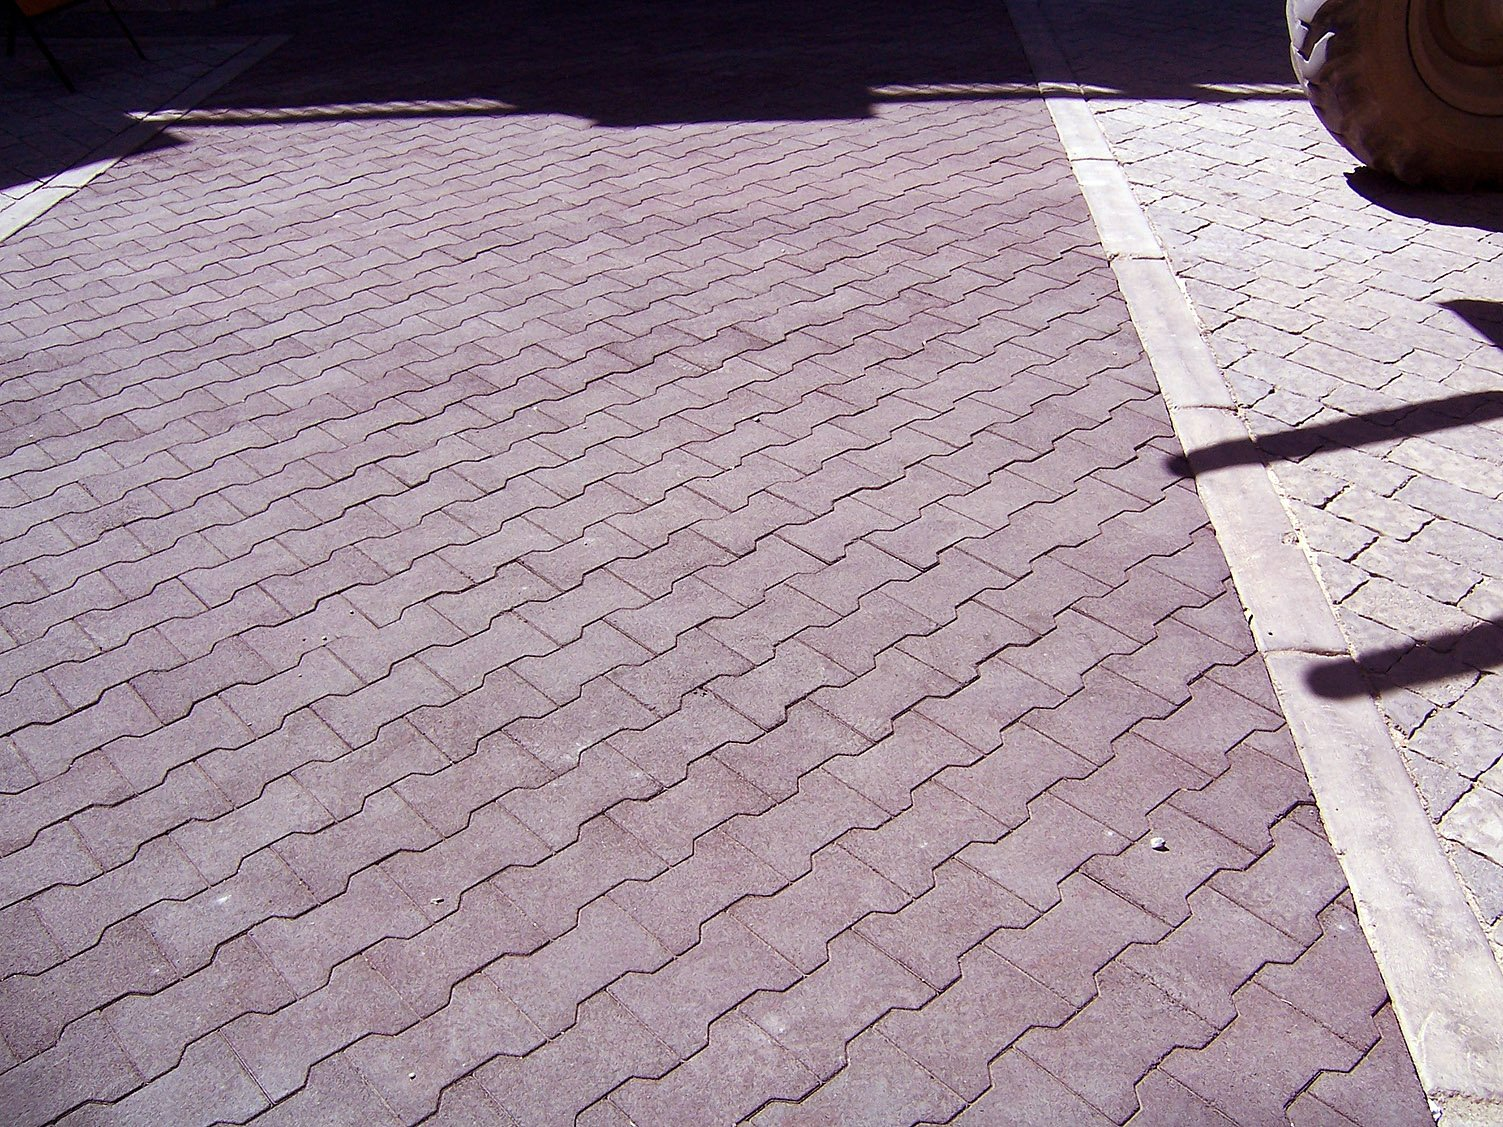 New Again Rubber Pavers Amp Tiles